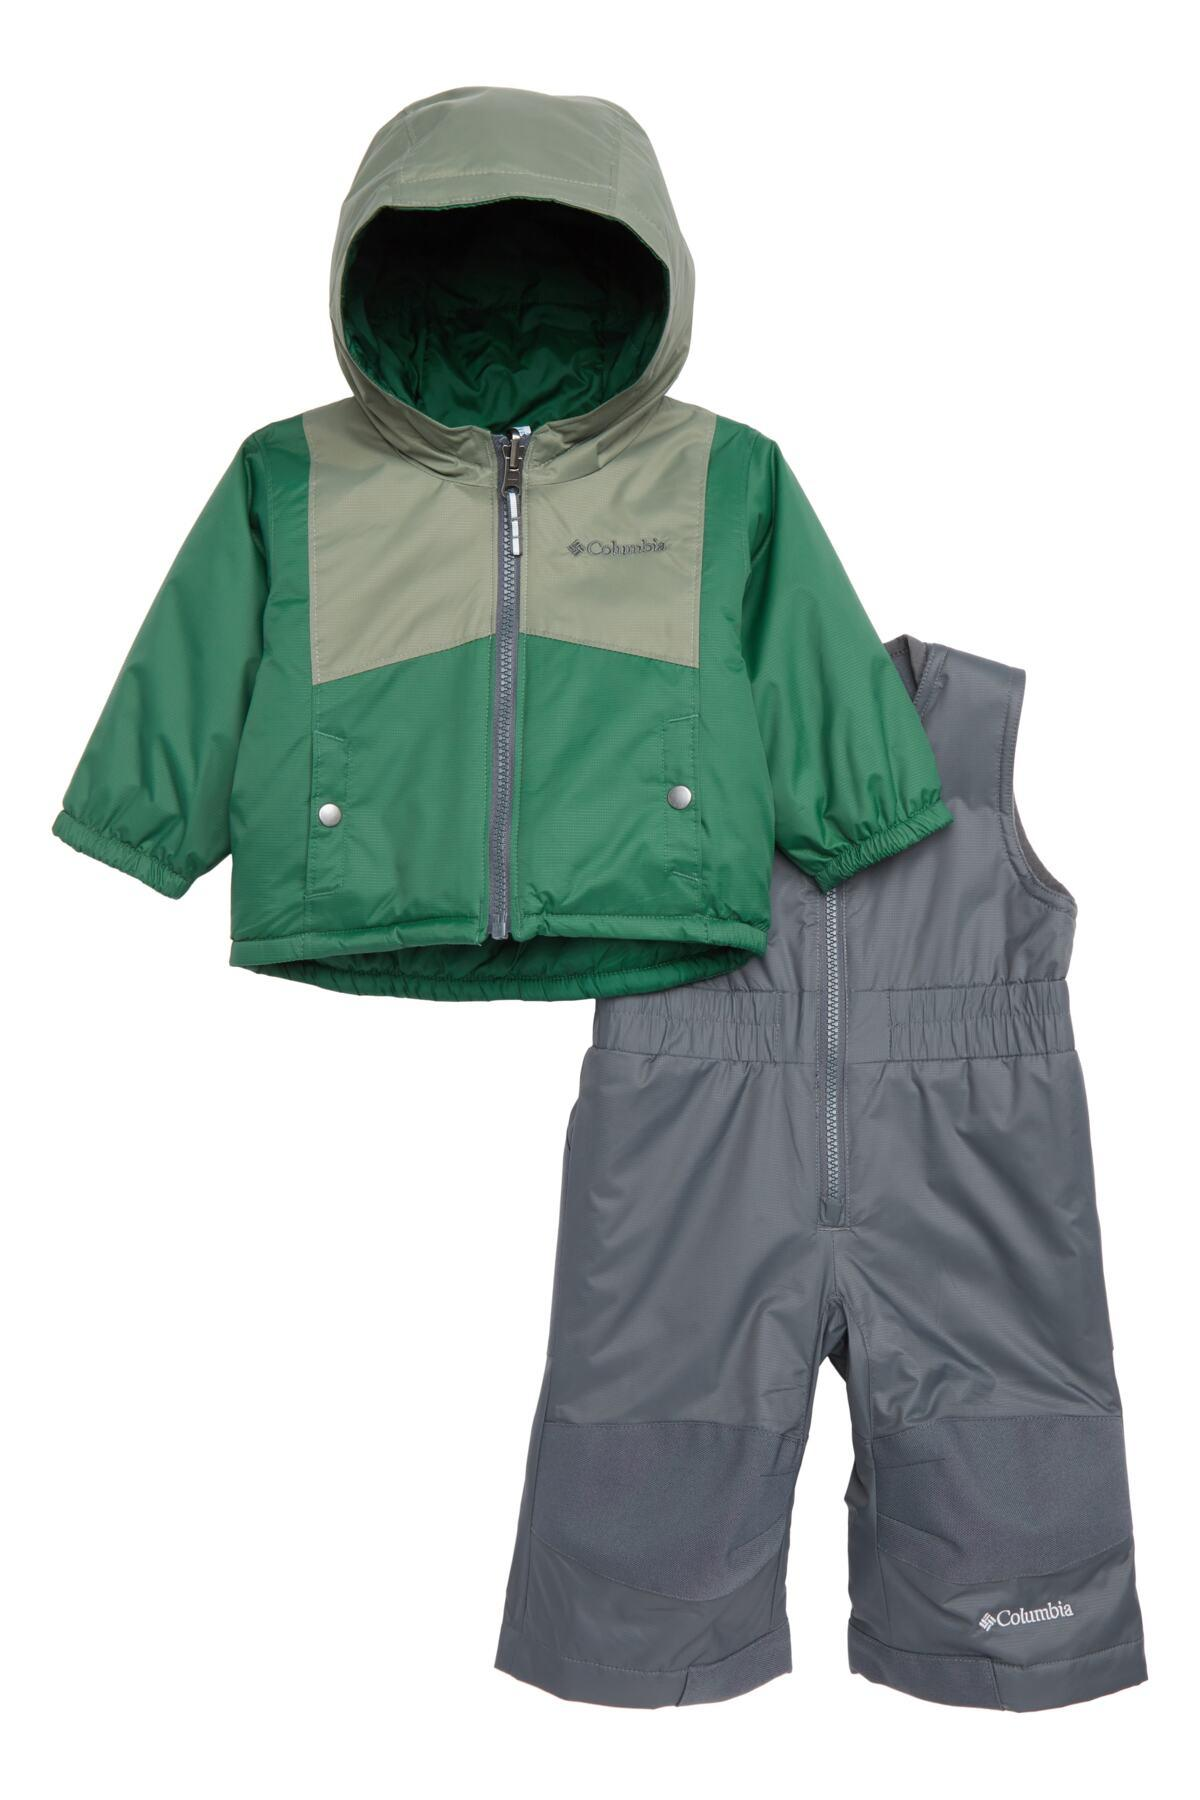 52d8caf07 Columbia - Green Double Flake Waterproof Insulated Jacket & Bib Snowsuit (baby  Girls) for. View fullscreen